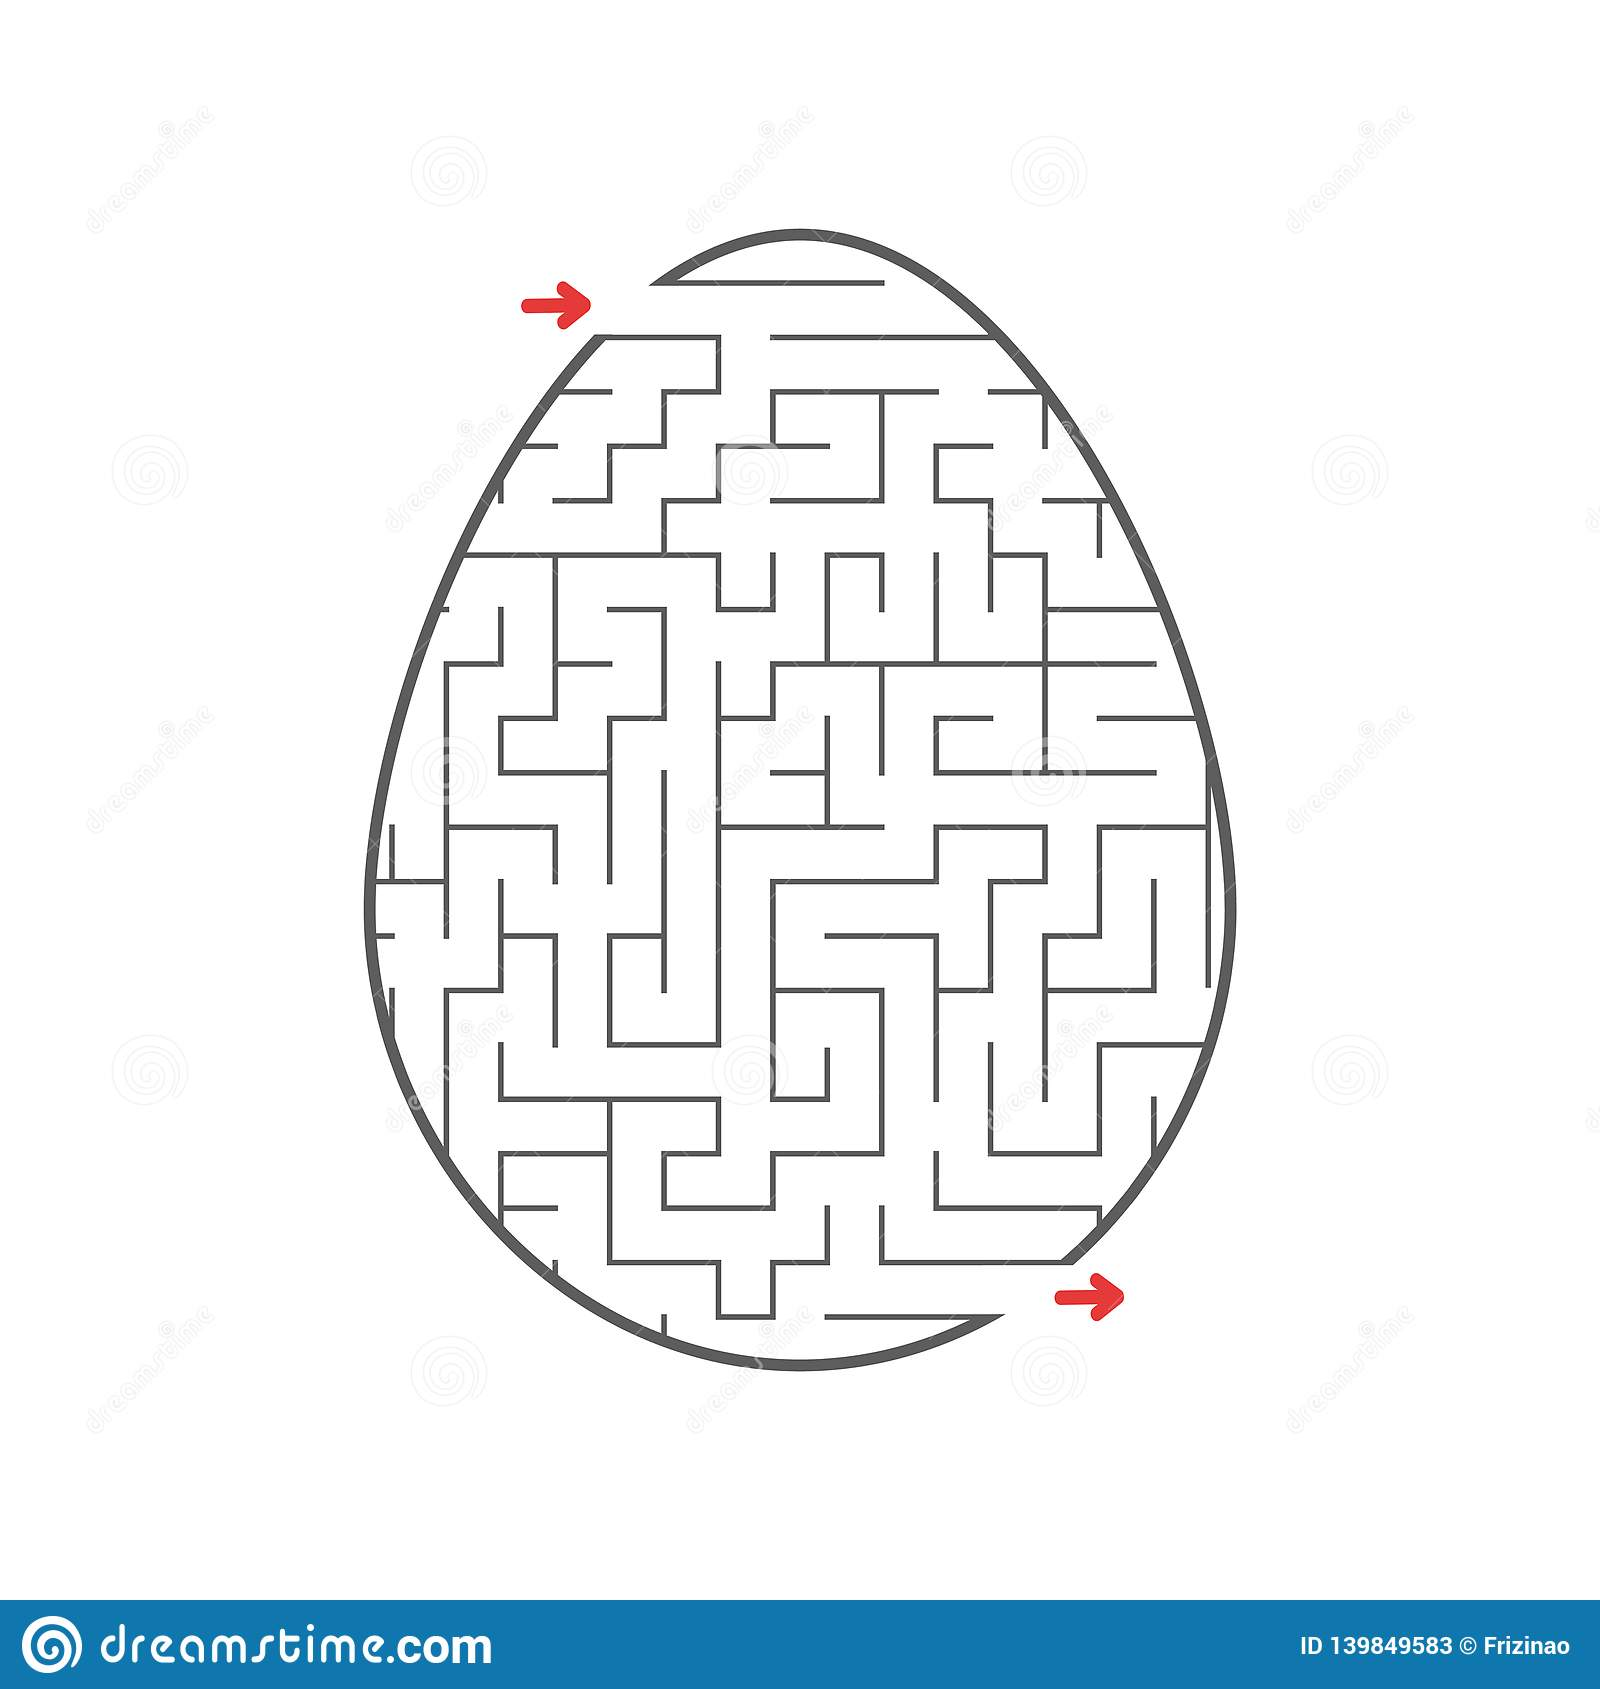 Black Labyrinth Egg Kids Worksheets Activity Page Game Puzzle For Children Easter Holiday